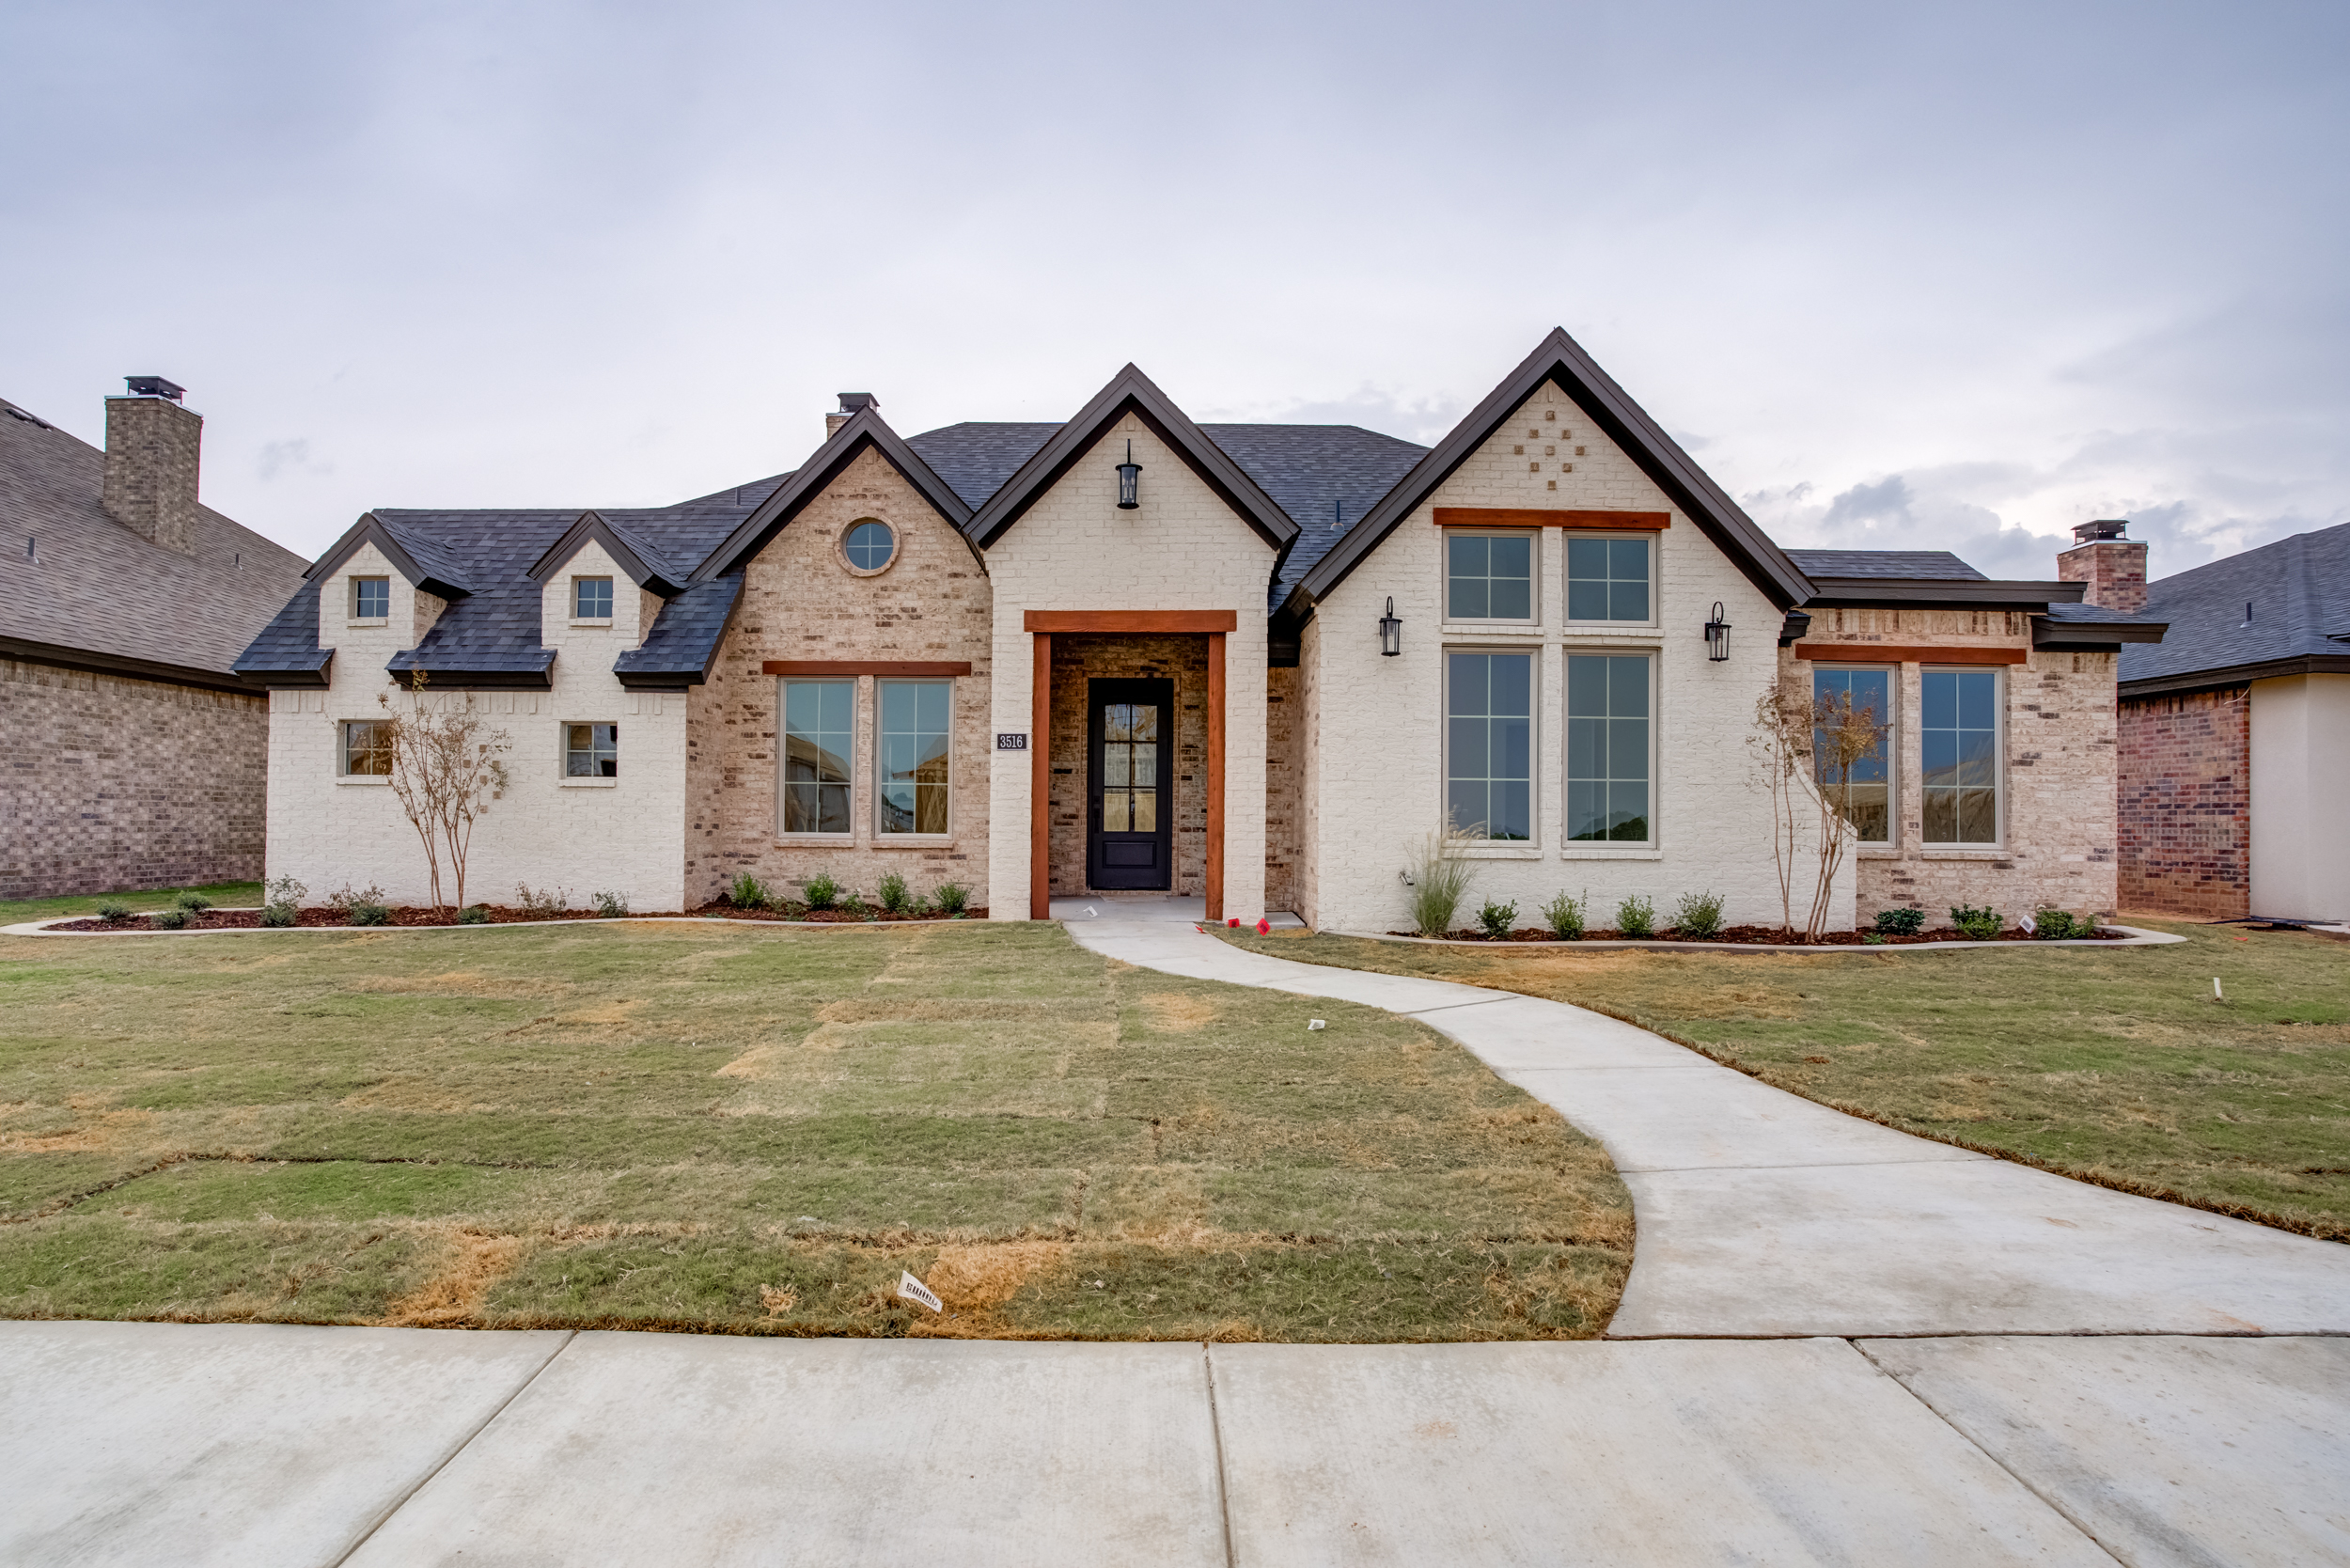 Beautiful new home for sale in Lubbock, Texas, with interesting design and brick exterior.